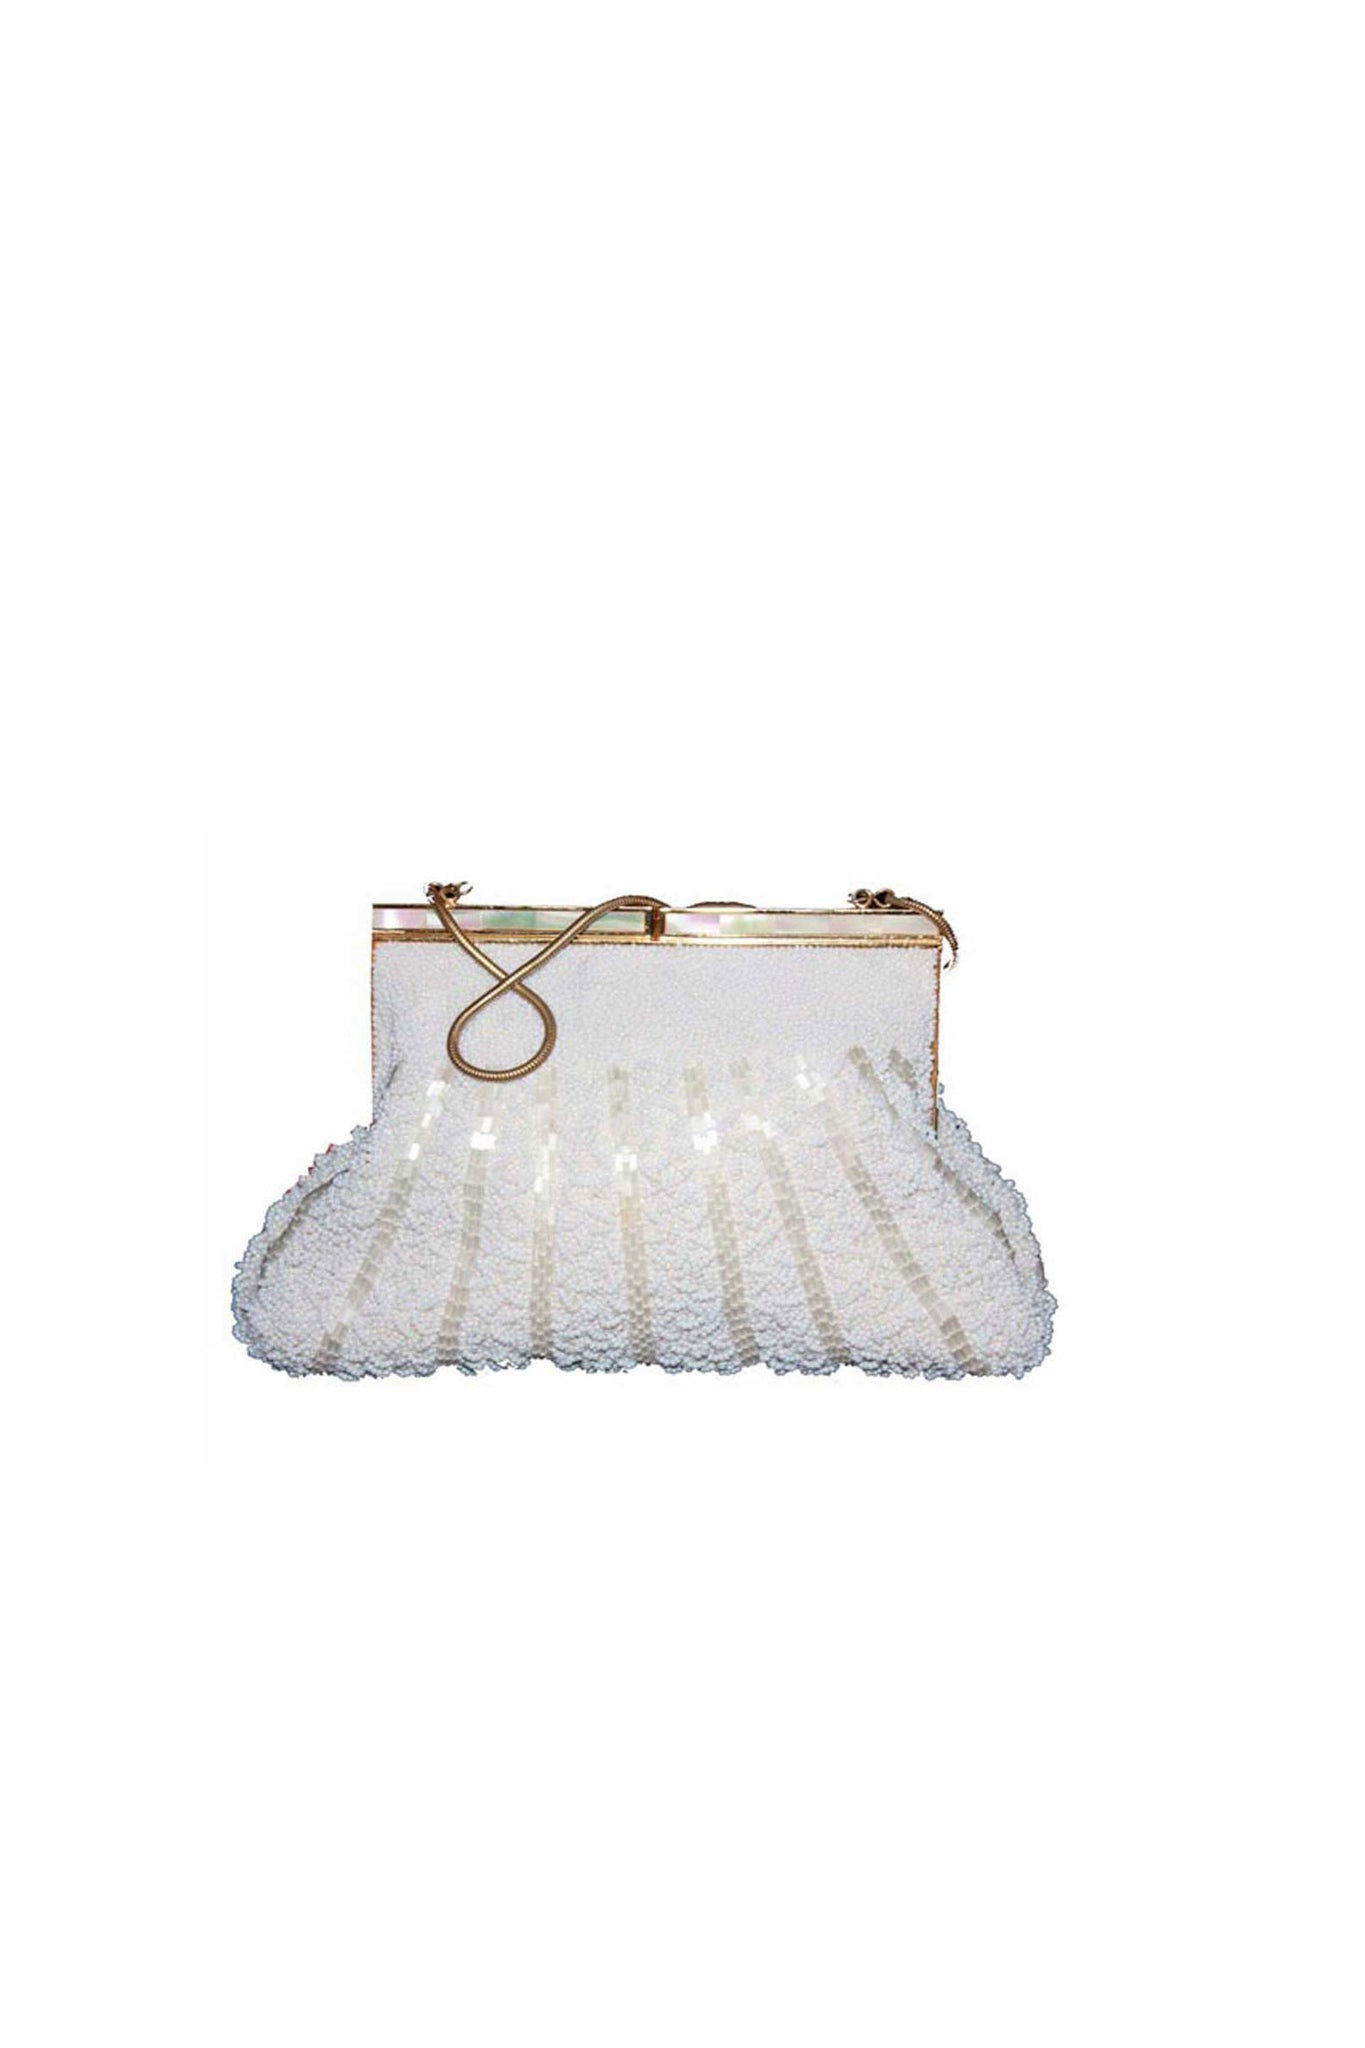 Vintage beaded wedding bag - SoLovesVintage